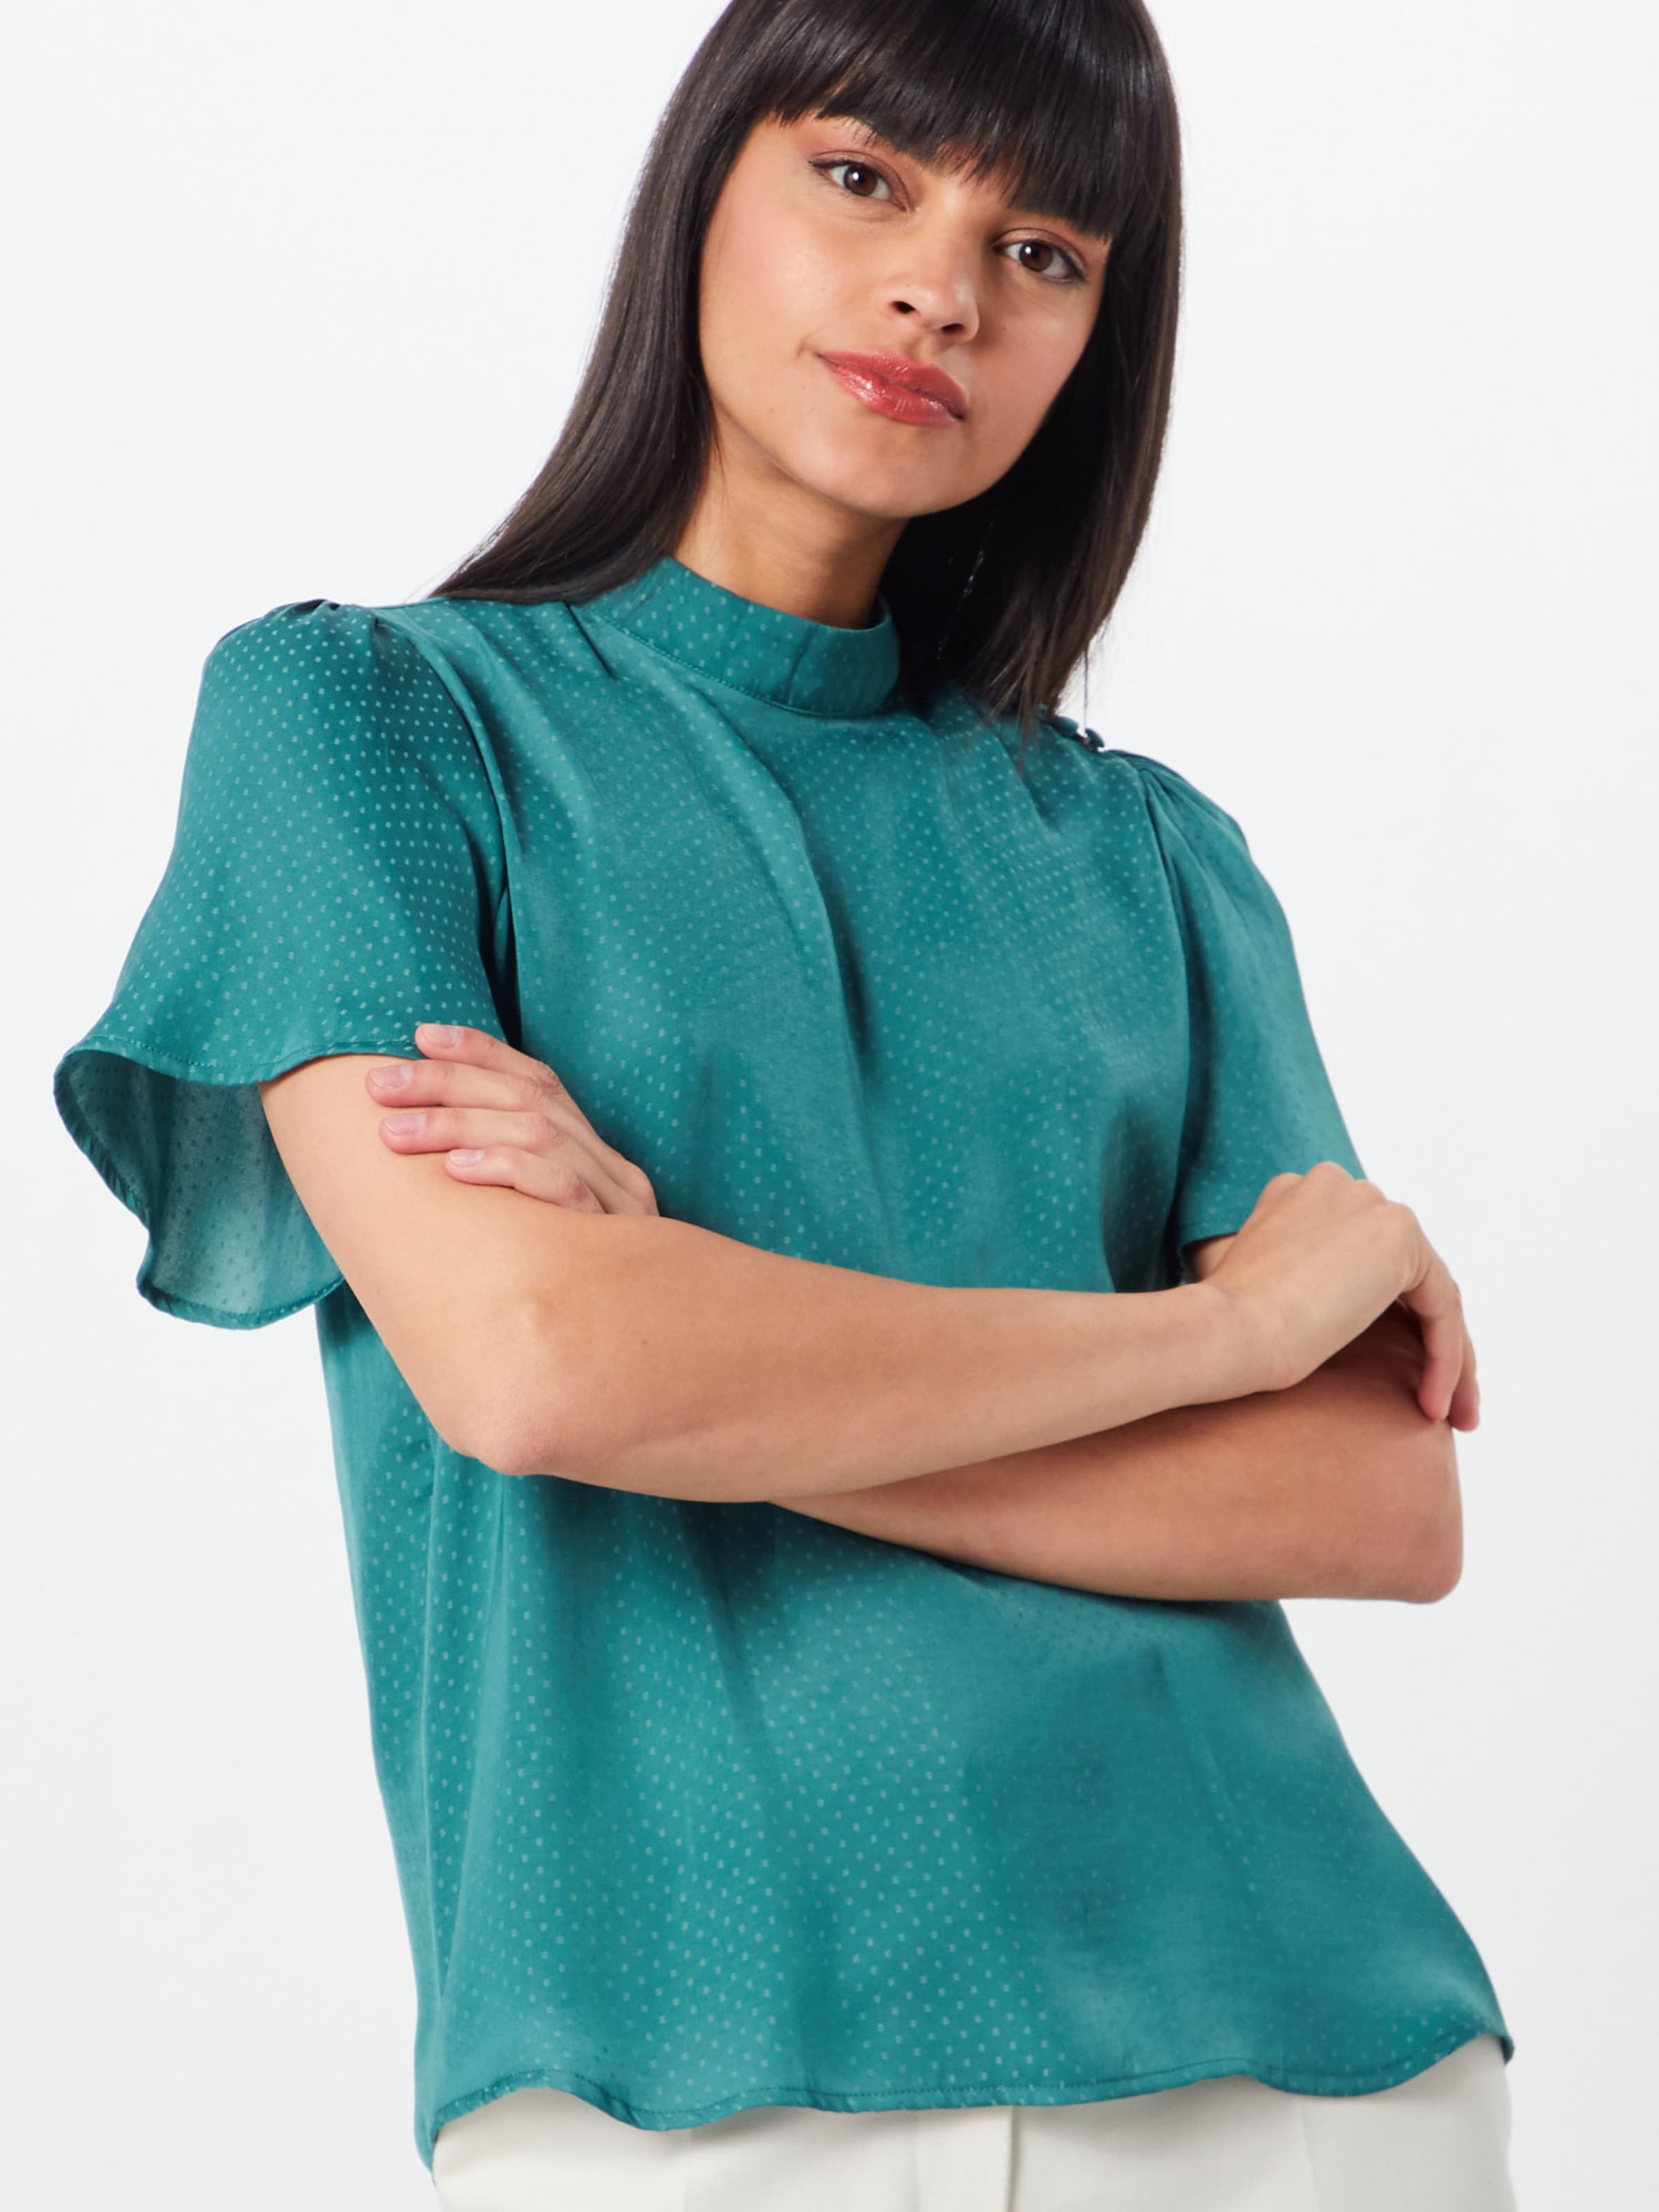 Jade Object In 'jeanette' In Bluse Bluse Object 'jeanette' dxhQrCotsB